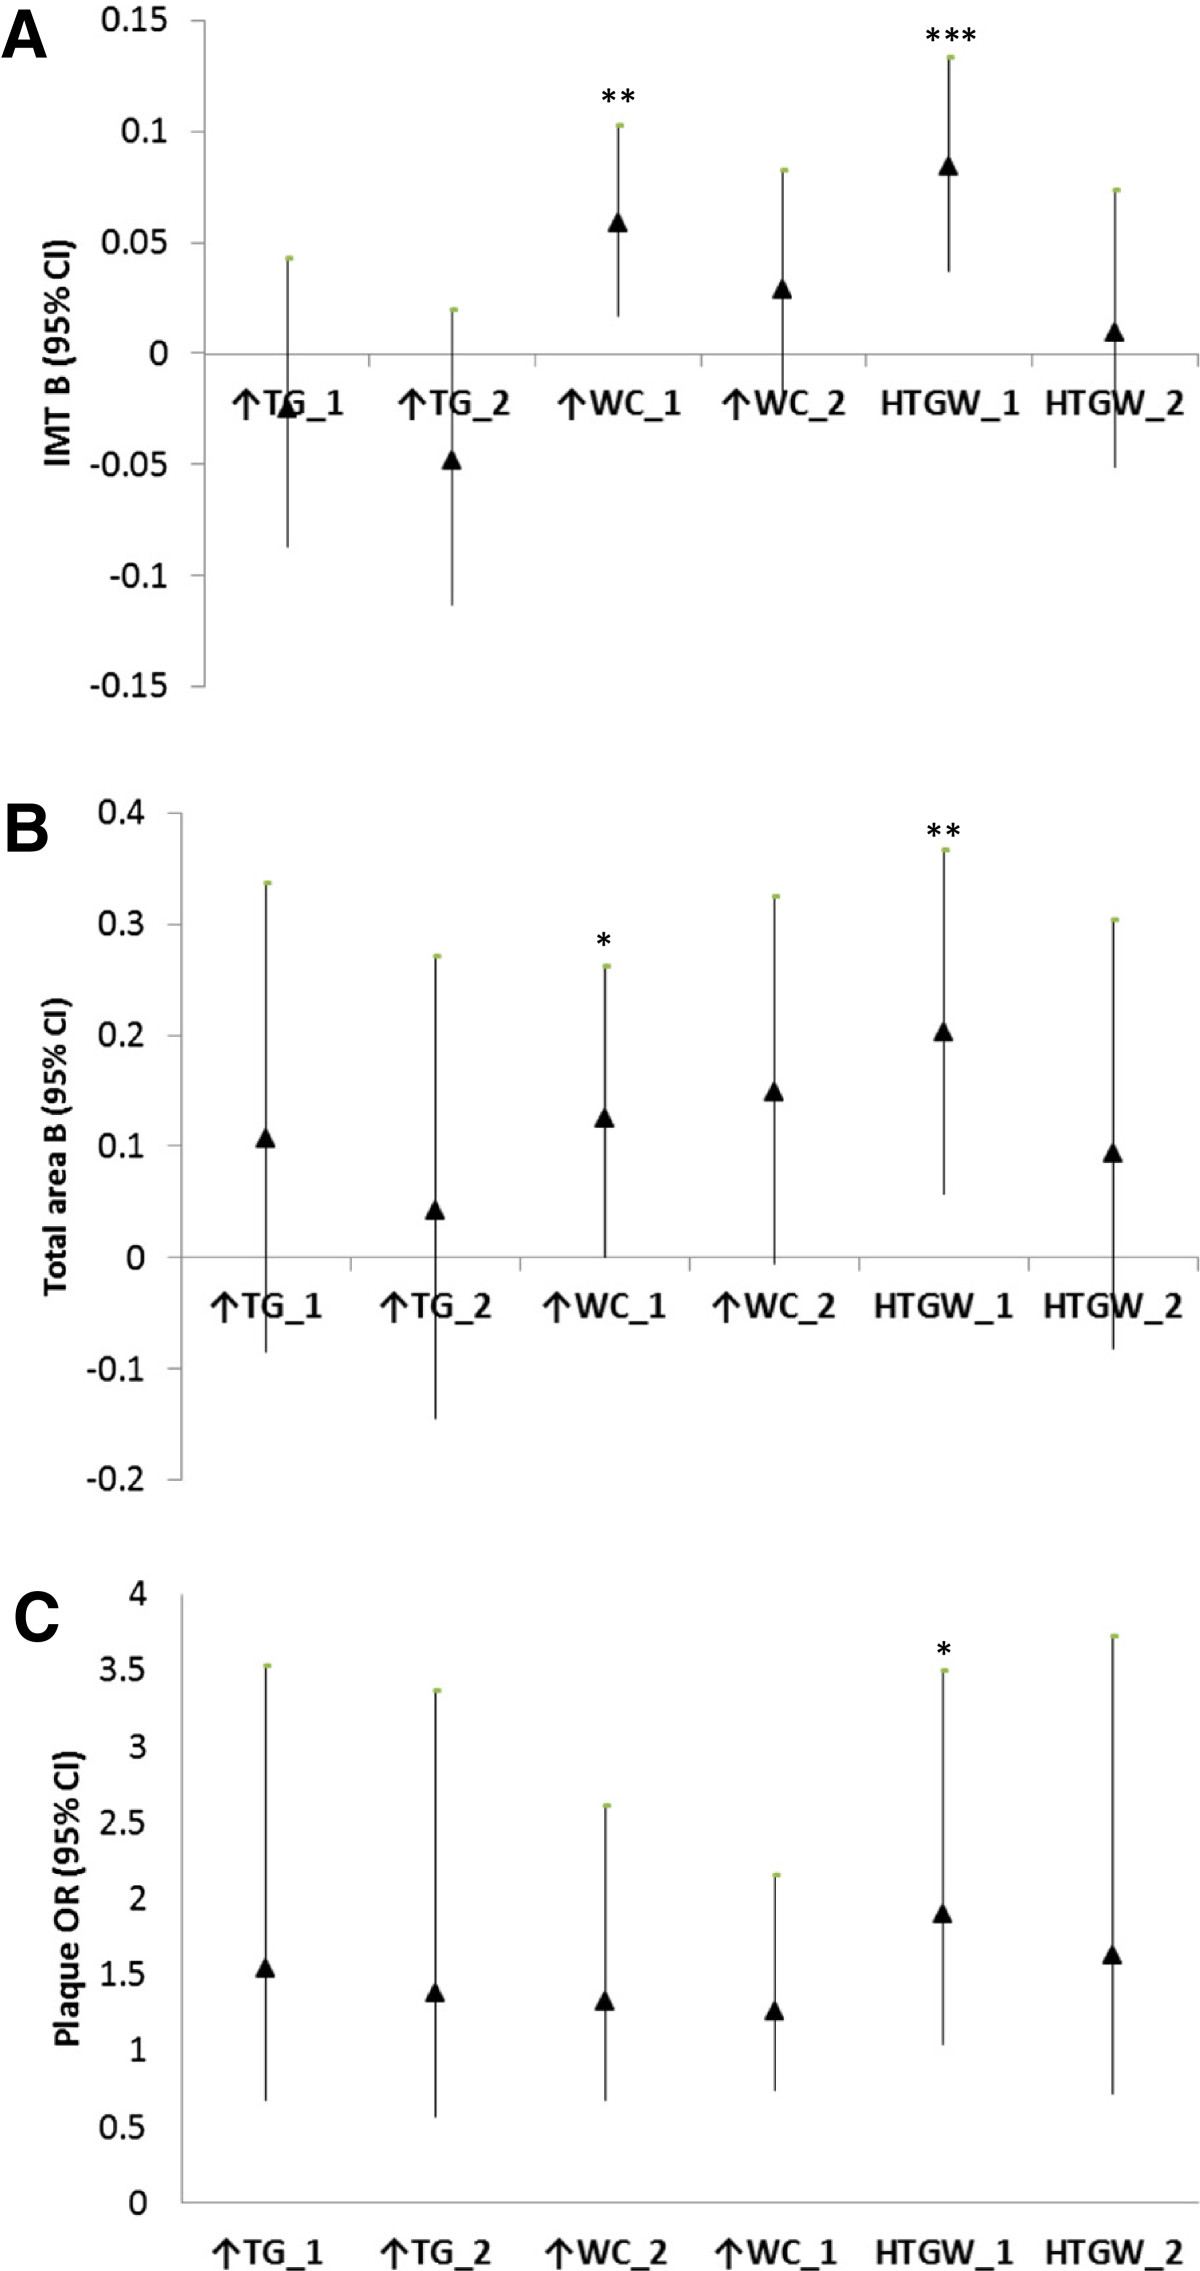 http://static-content.springer.com/image/art%3A10.1186%2F1476-511X-13-38/MediaObjects/12944_2013_Article_1040_Fig1_HTML.jpg